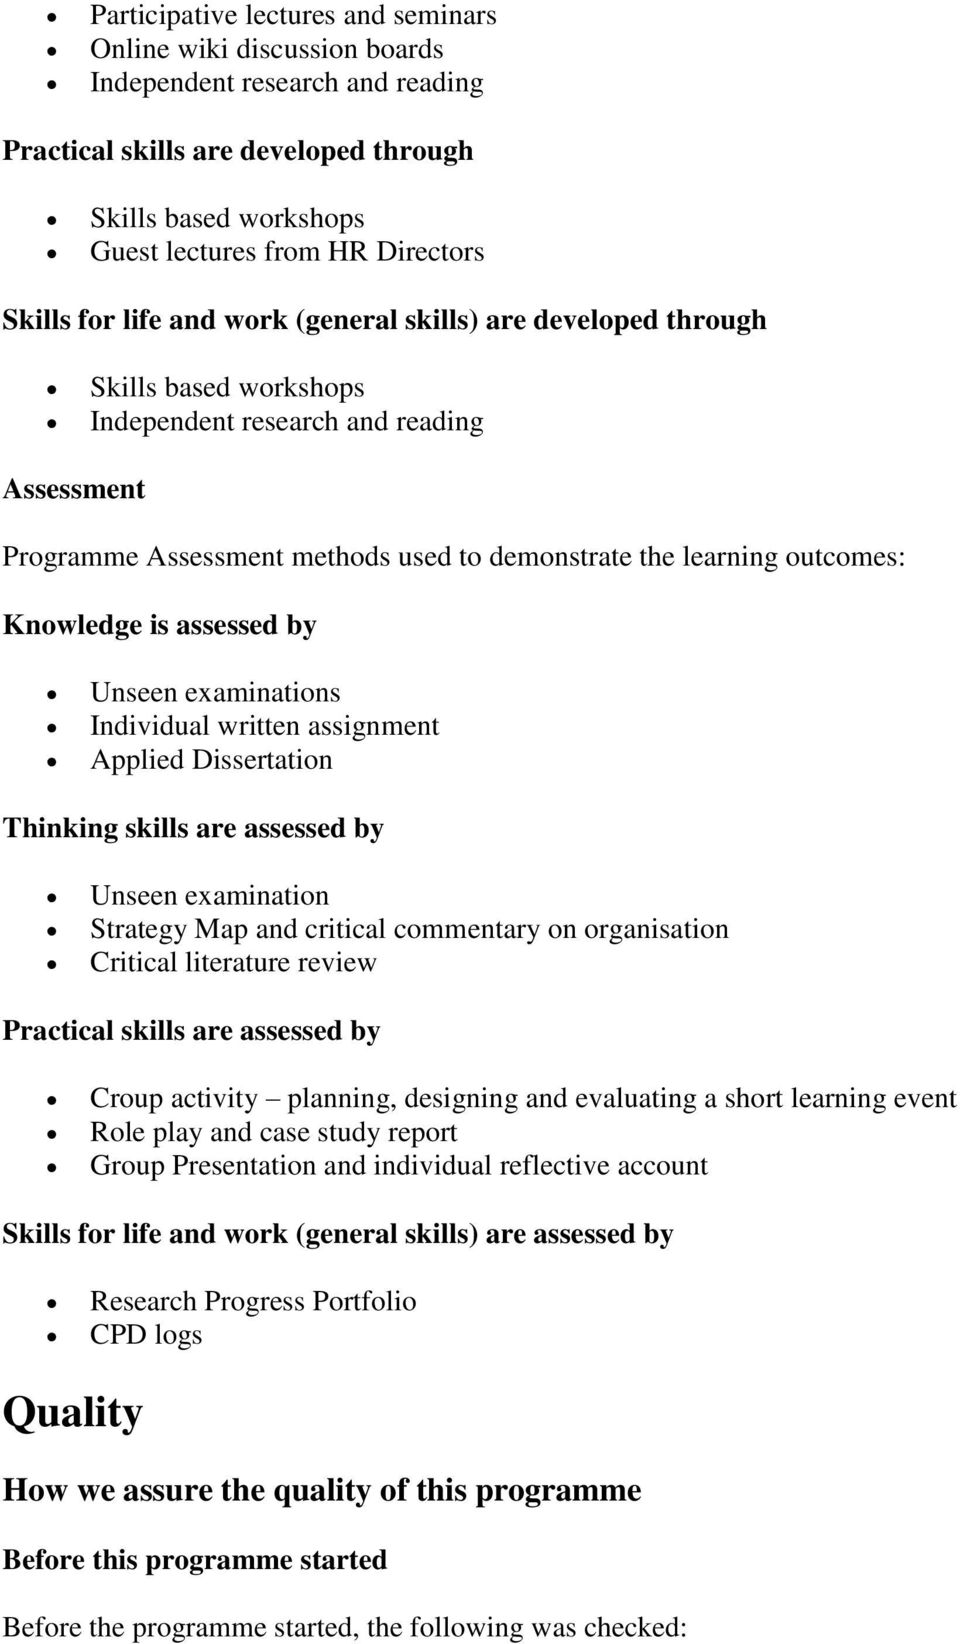 outcomes: Knowledge is assessed by Unseen examinations Individual written assignment Applied Dissertation Thinking skills are assessed by Unseen examination Strategy Map and critical commentary on